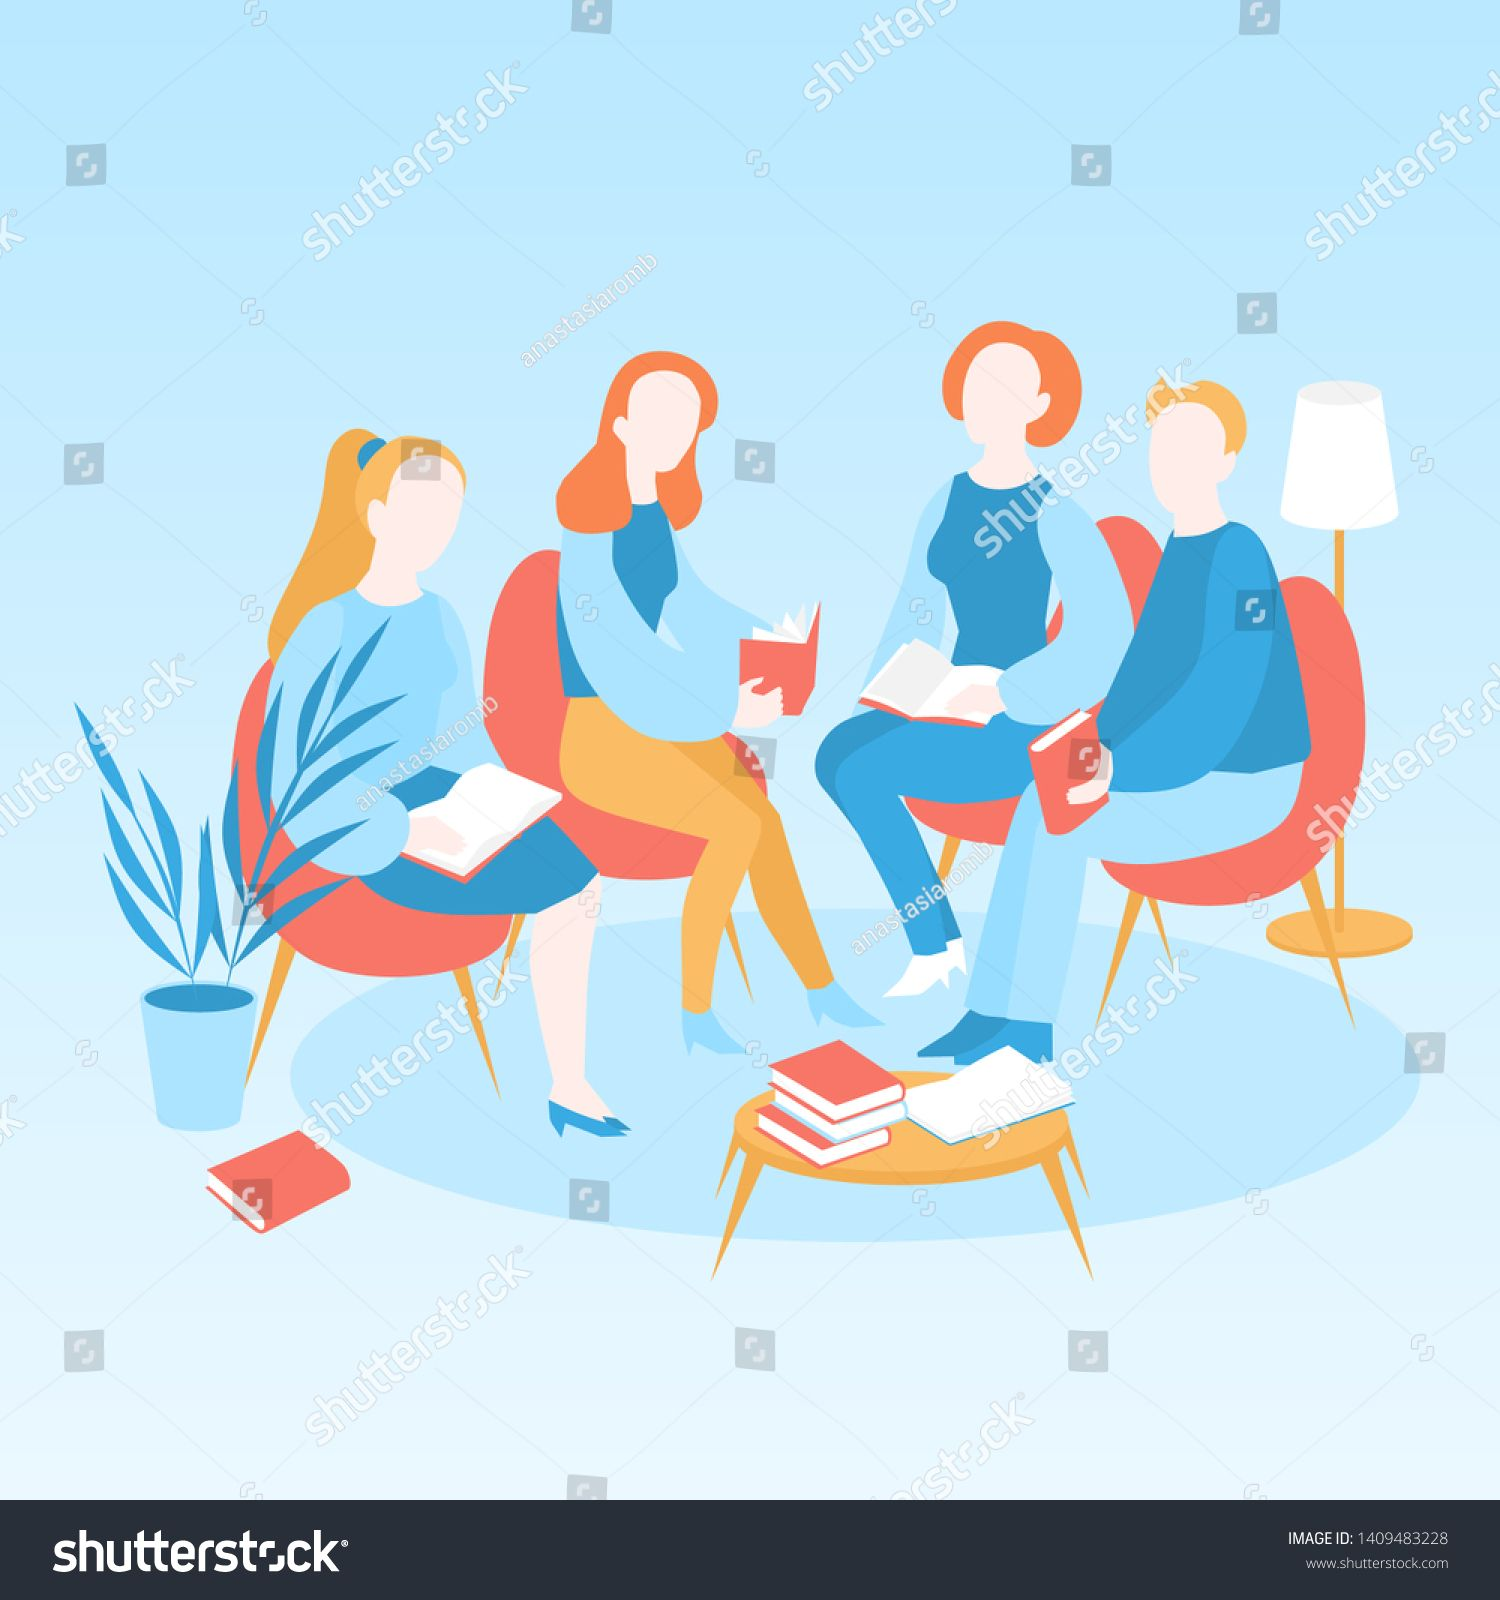 Book club meeting, Vector illustration of library